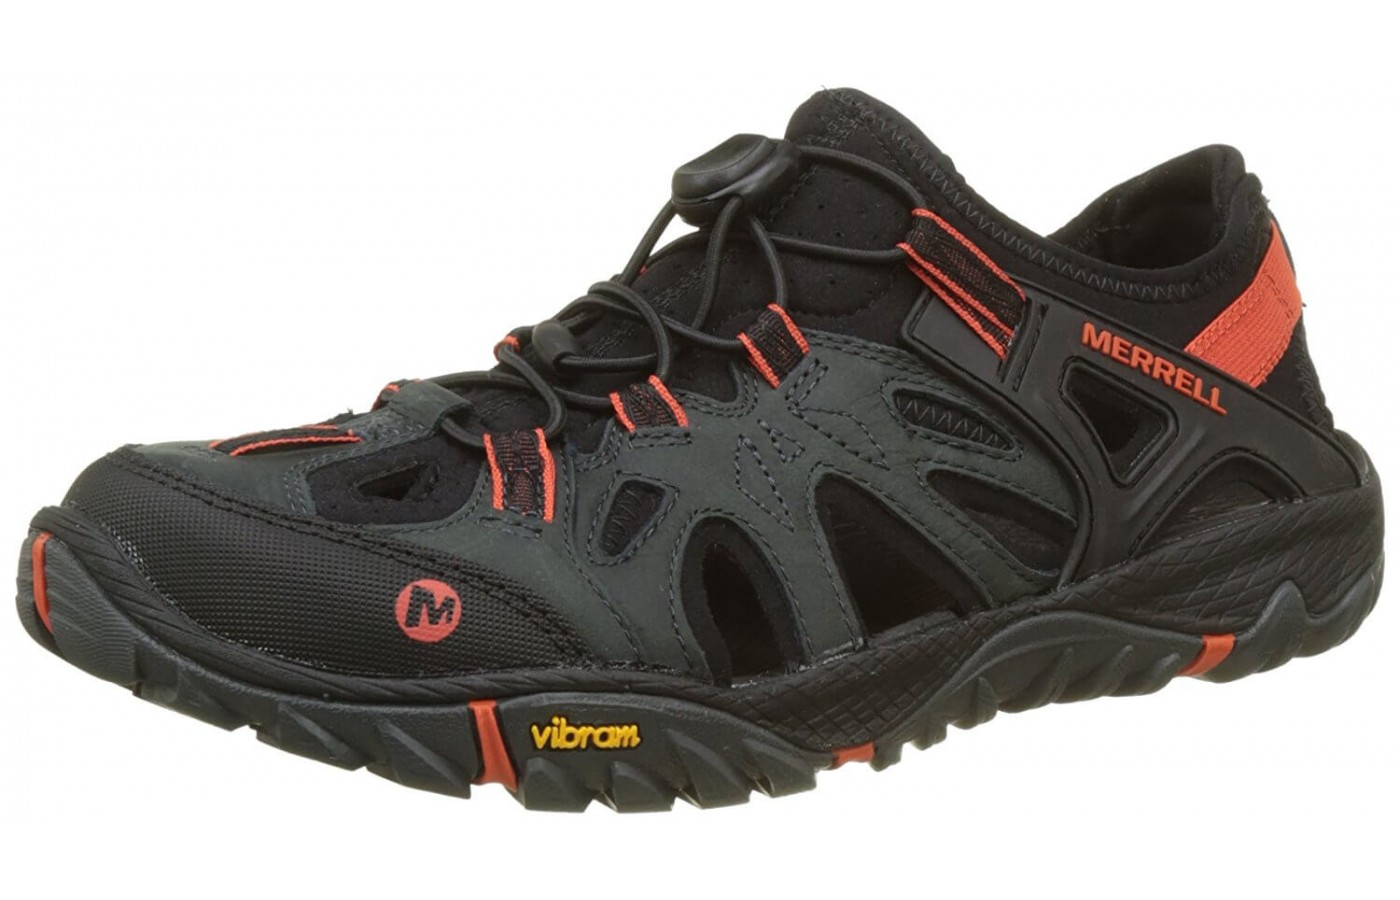 The Merrell All Out Blaze Sieve's first layer of water protection is its waterproof leather upper.